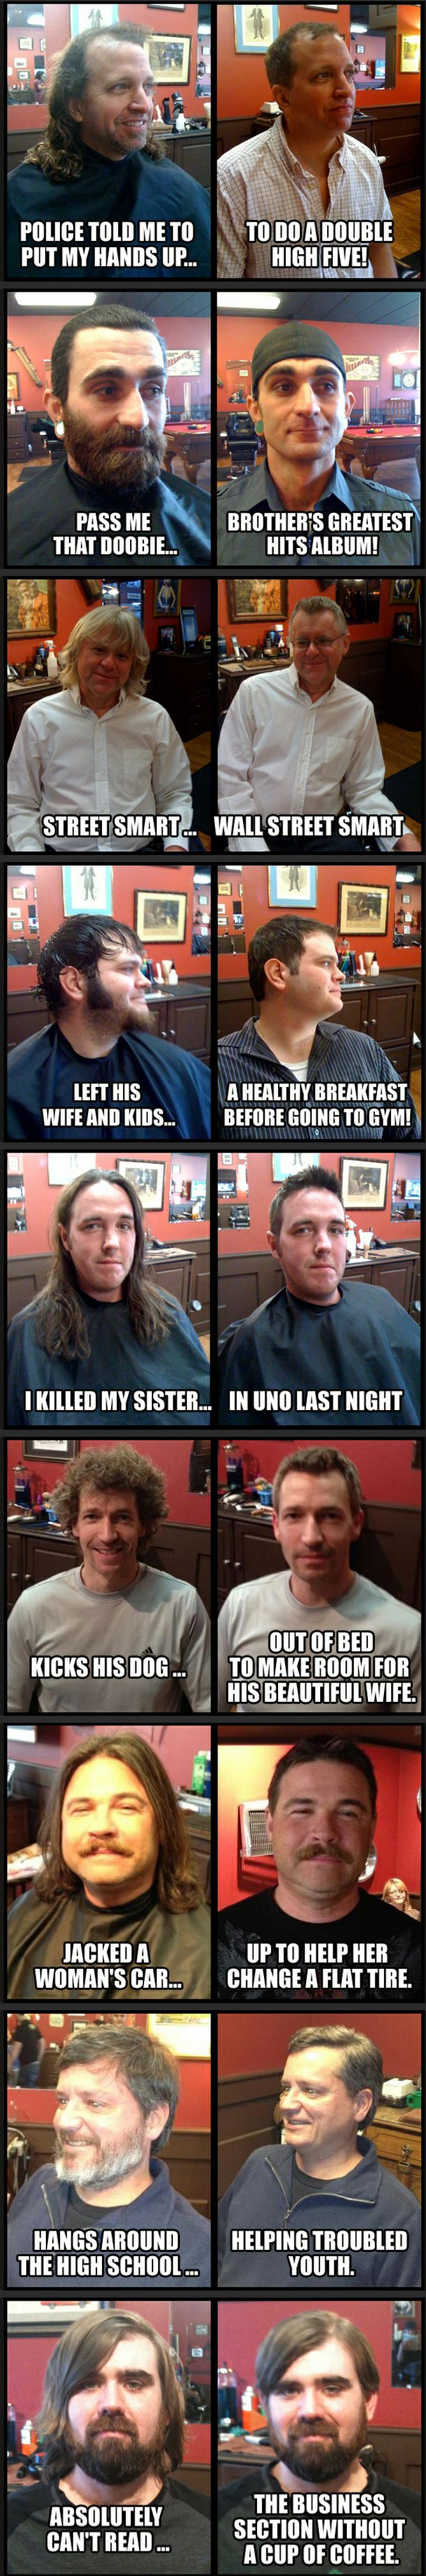 haircuts are so important...this is HILARIOUS